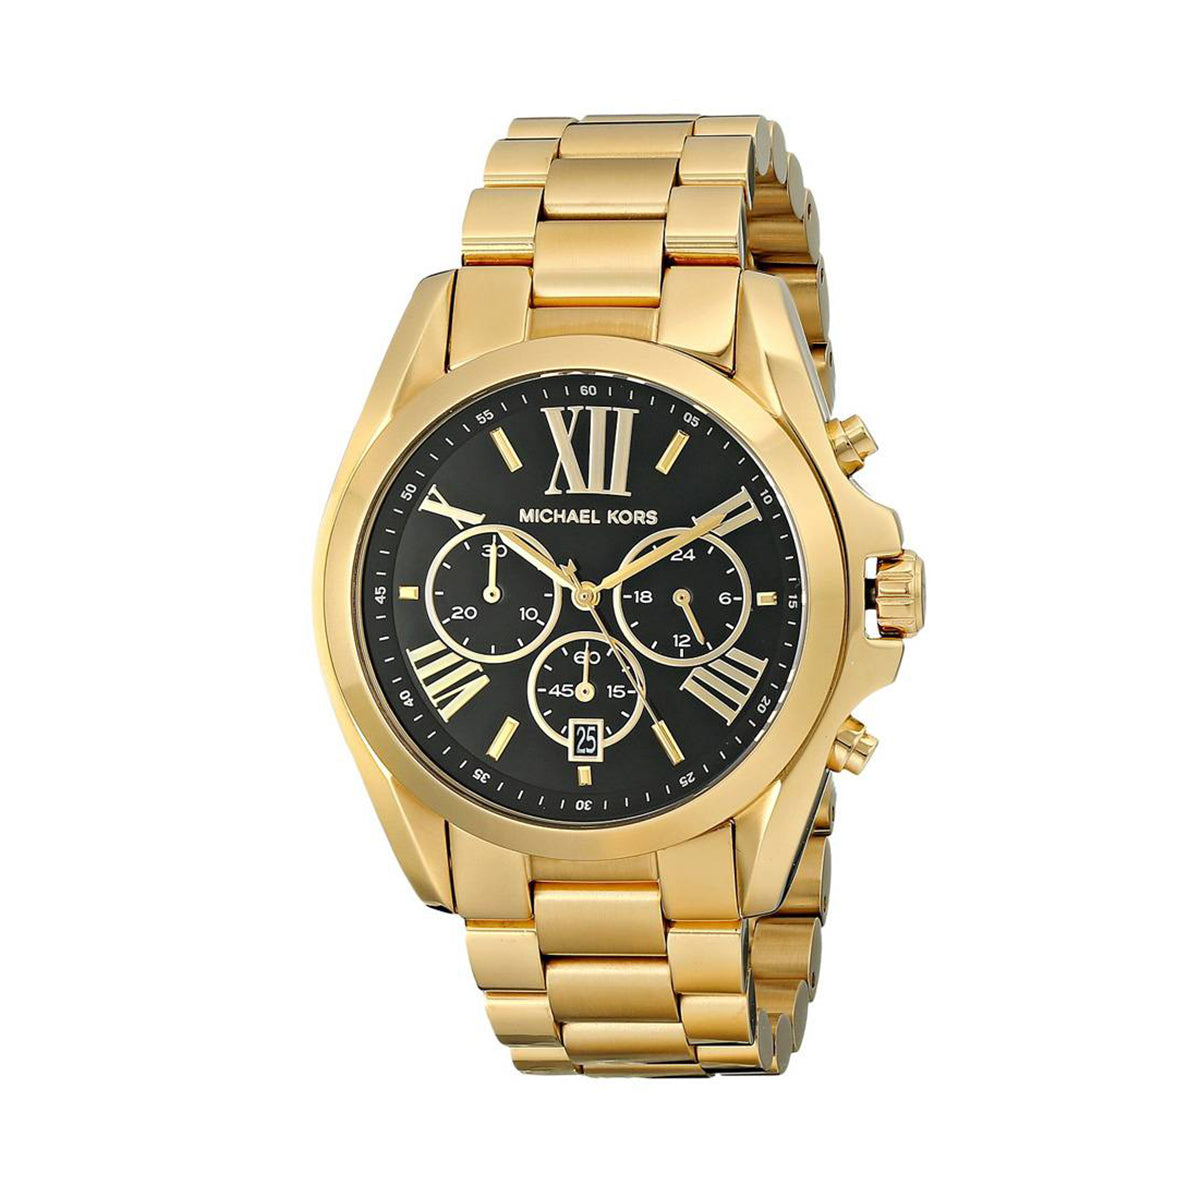 6ad8b6c7d Michael Kors MK5739 Bradshaw Chronograph Black Dial Gold tone Ladies Watch